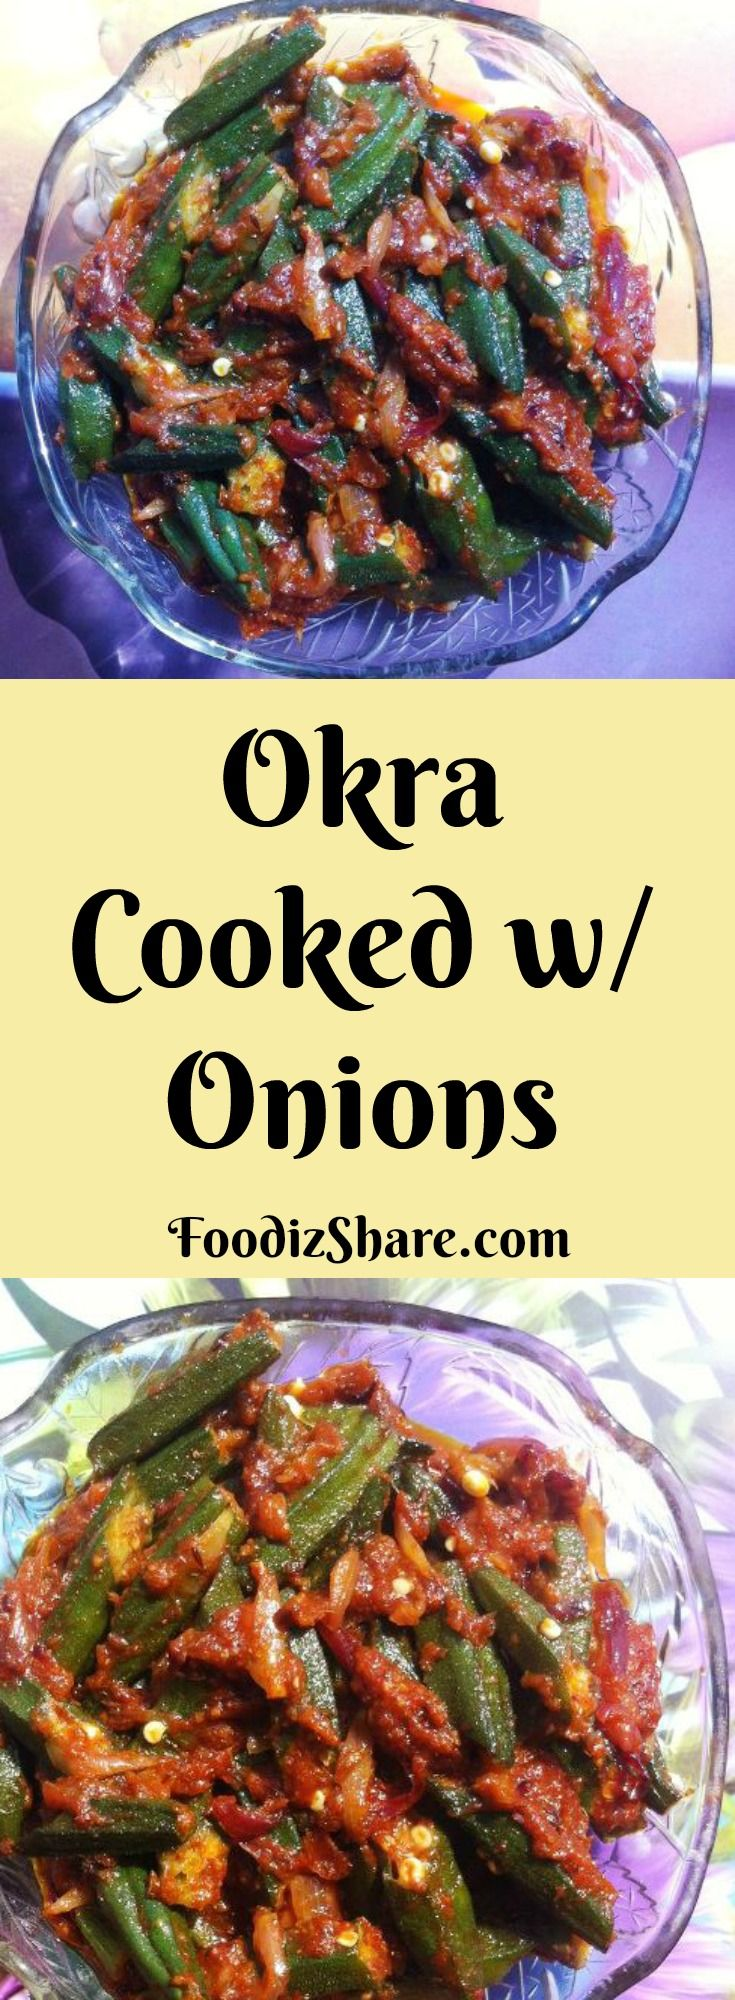 A #delicious okra #sidedish with #onion and #spice mix. #vegetarian  #vegetables #glutenfree #vegan #side #healthyrecipes #recipes